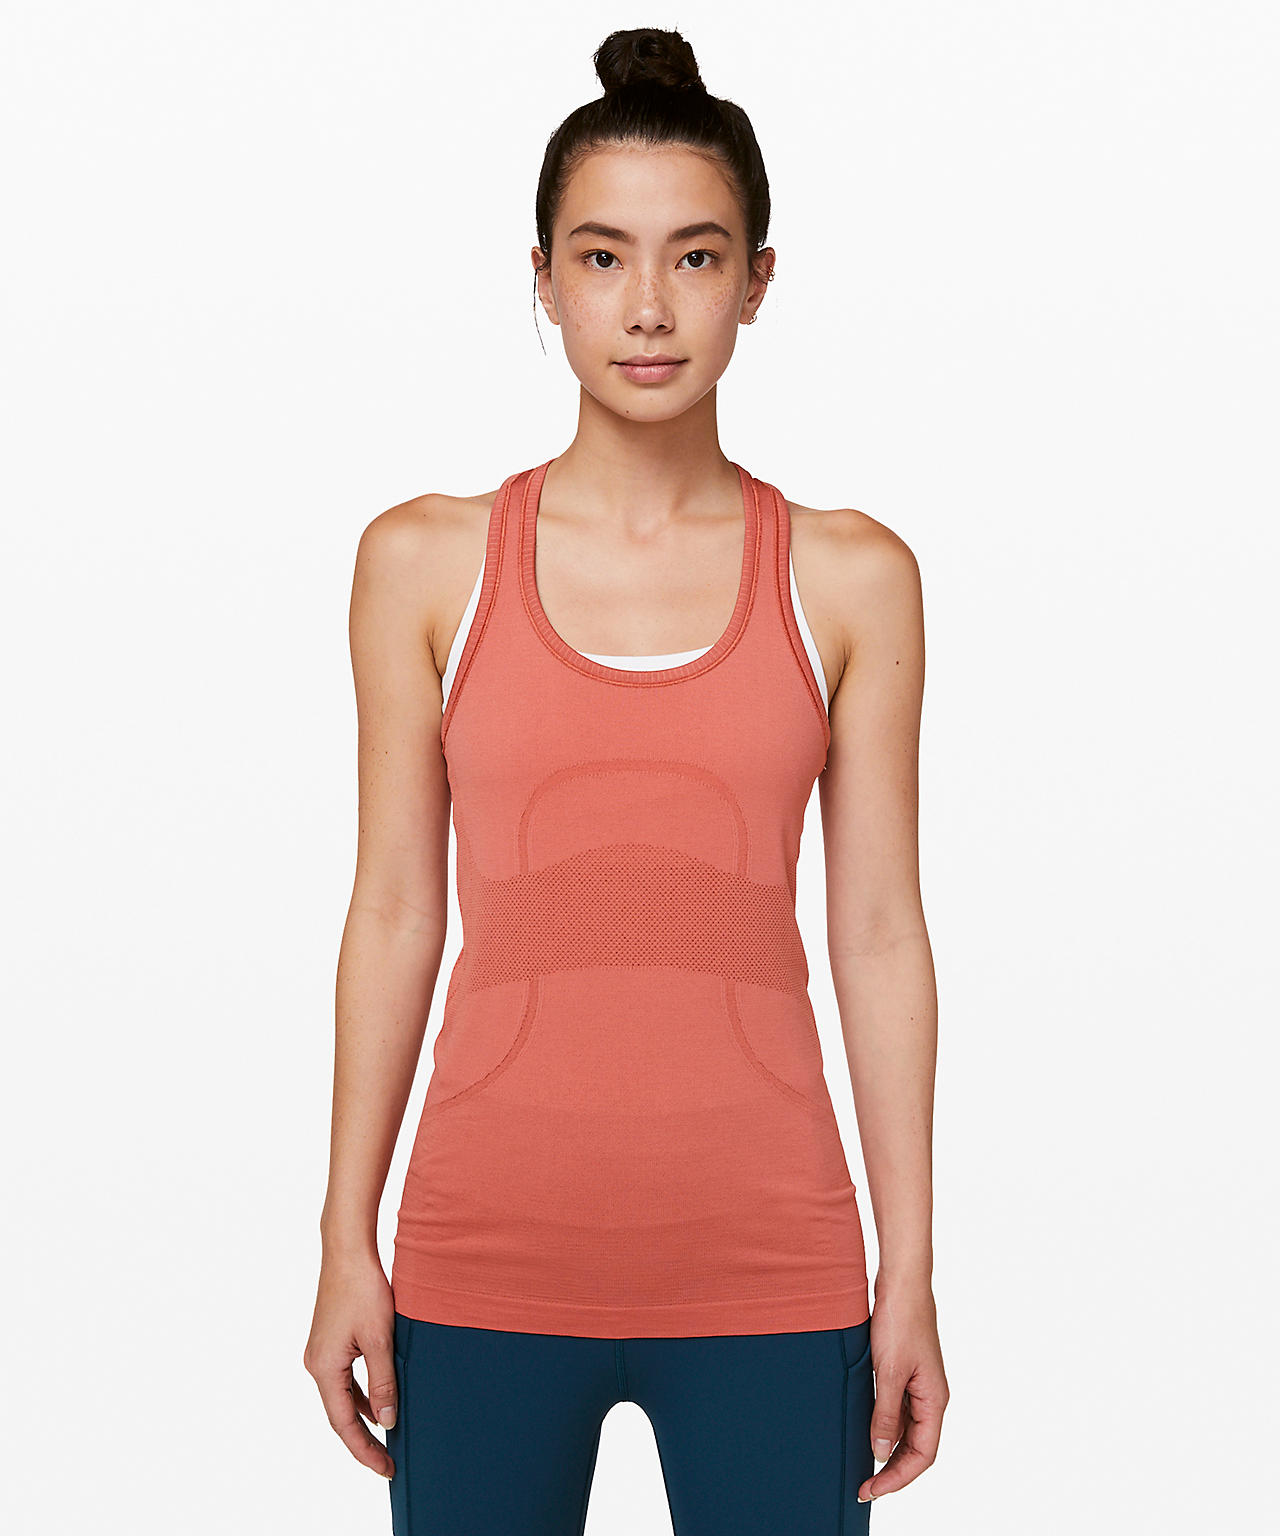 Swiftly Tech Racerback   Cayenne   What's New At Lululemon